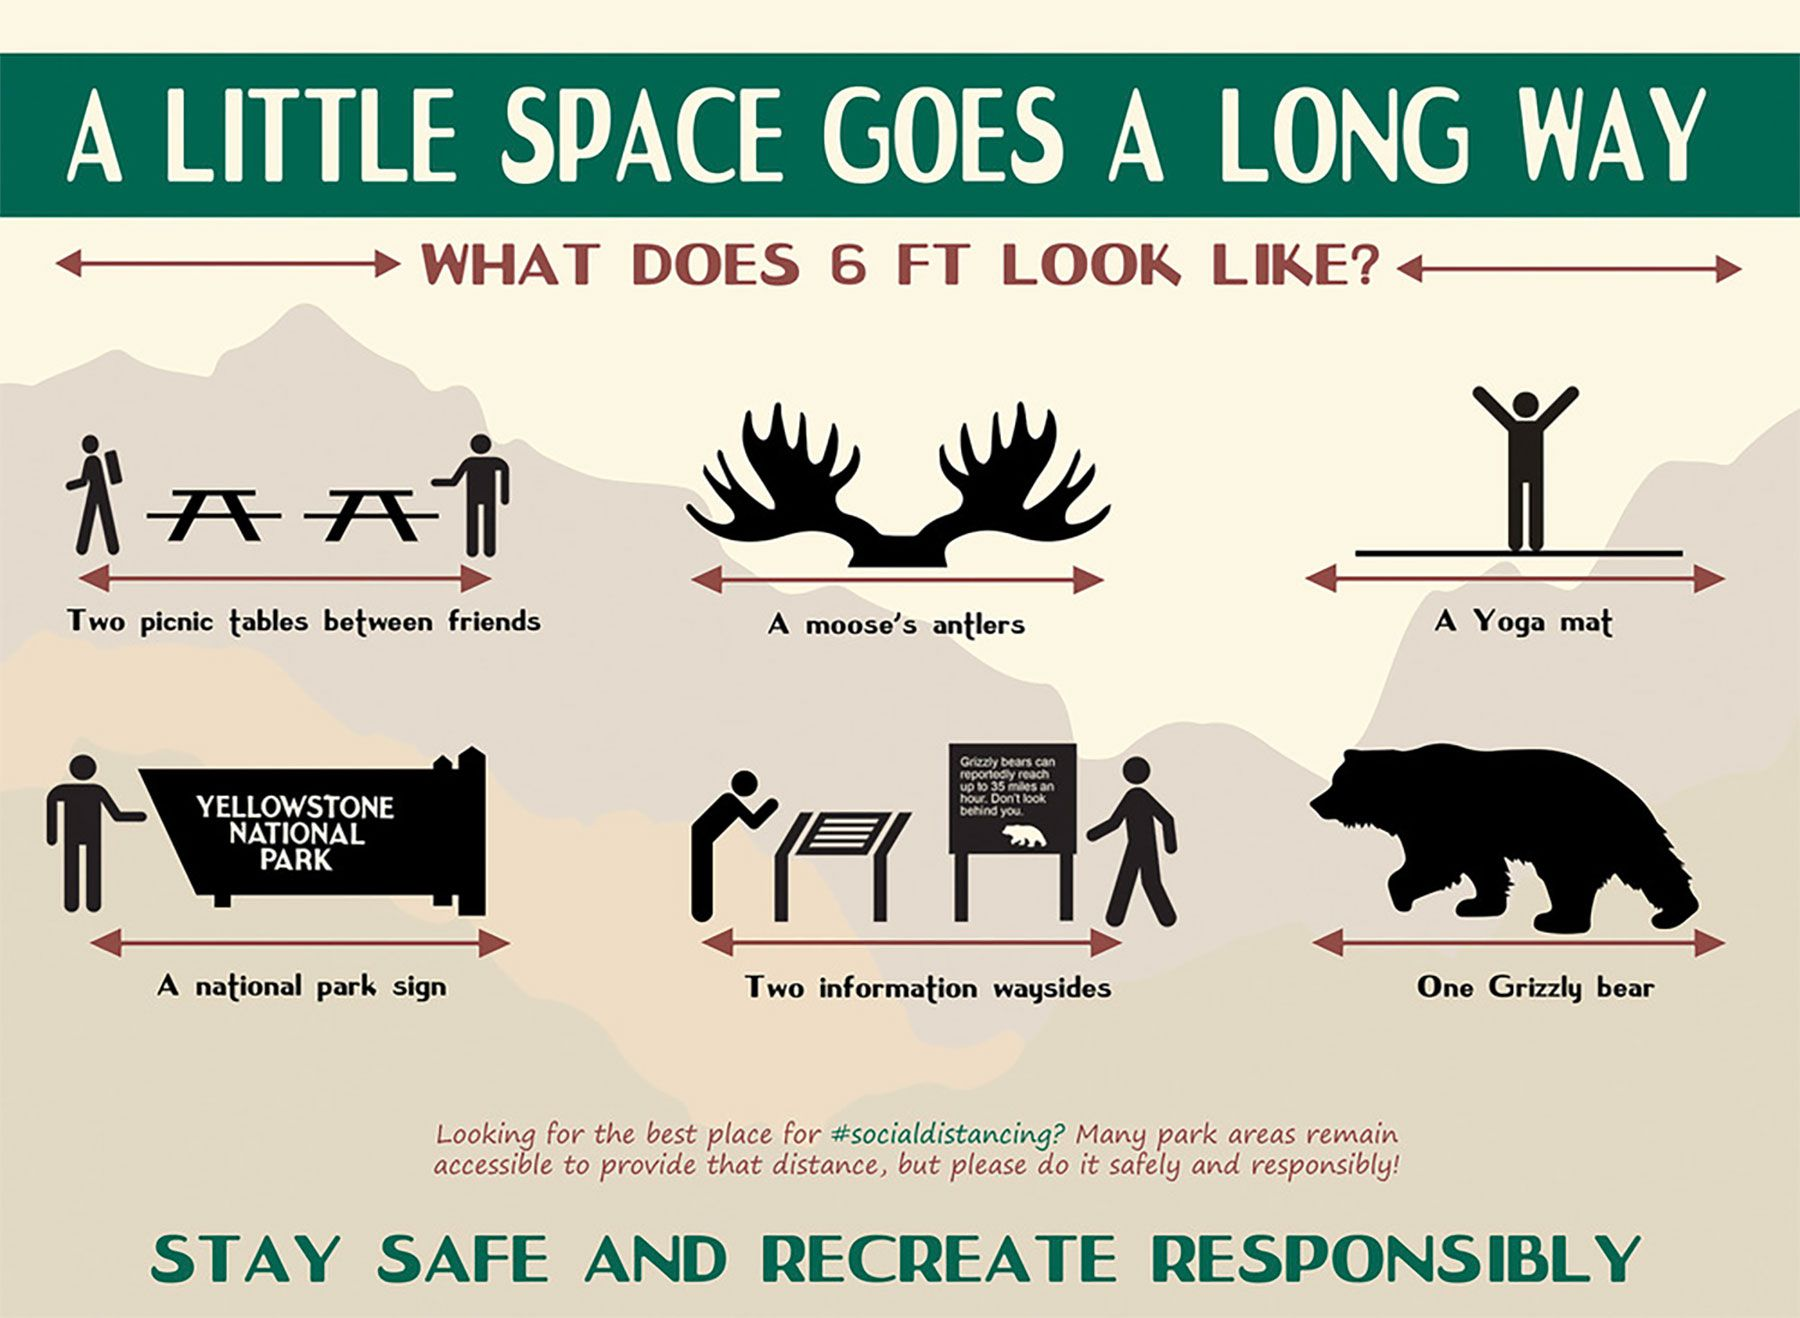 National Park Service Rolls Out Clever Social Distancing Posters